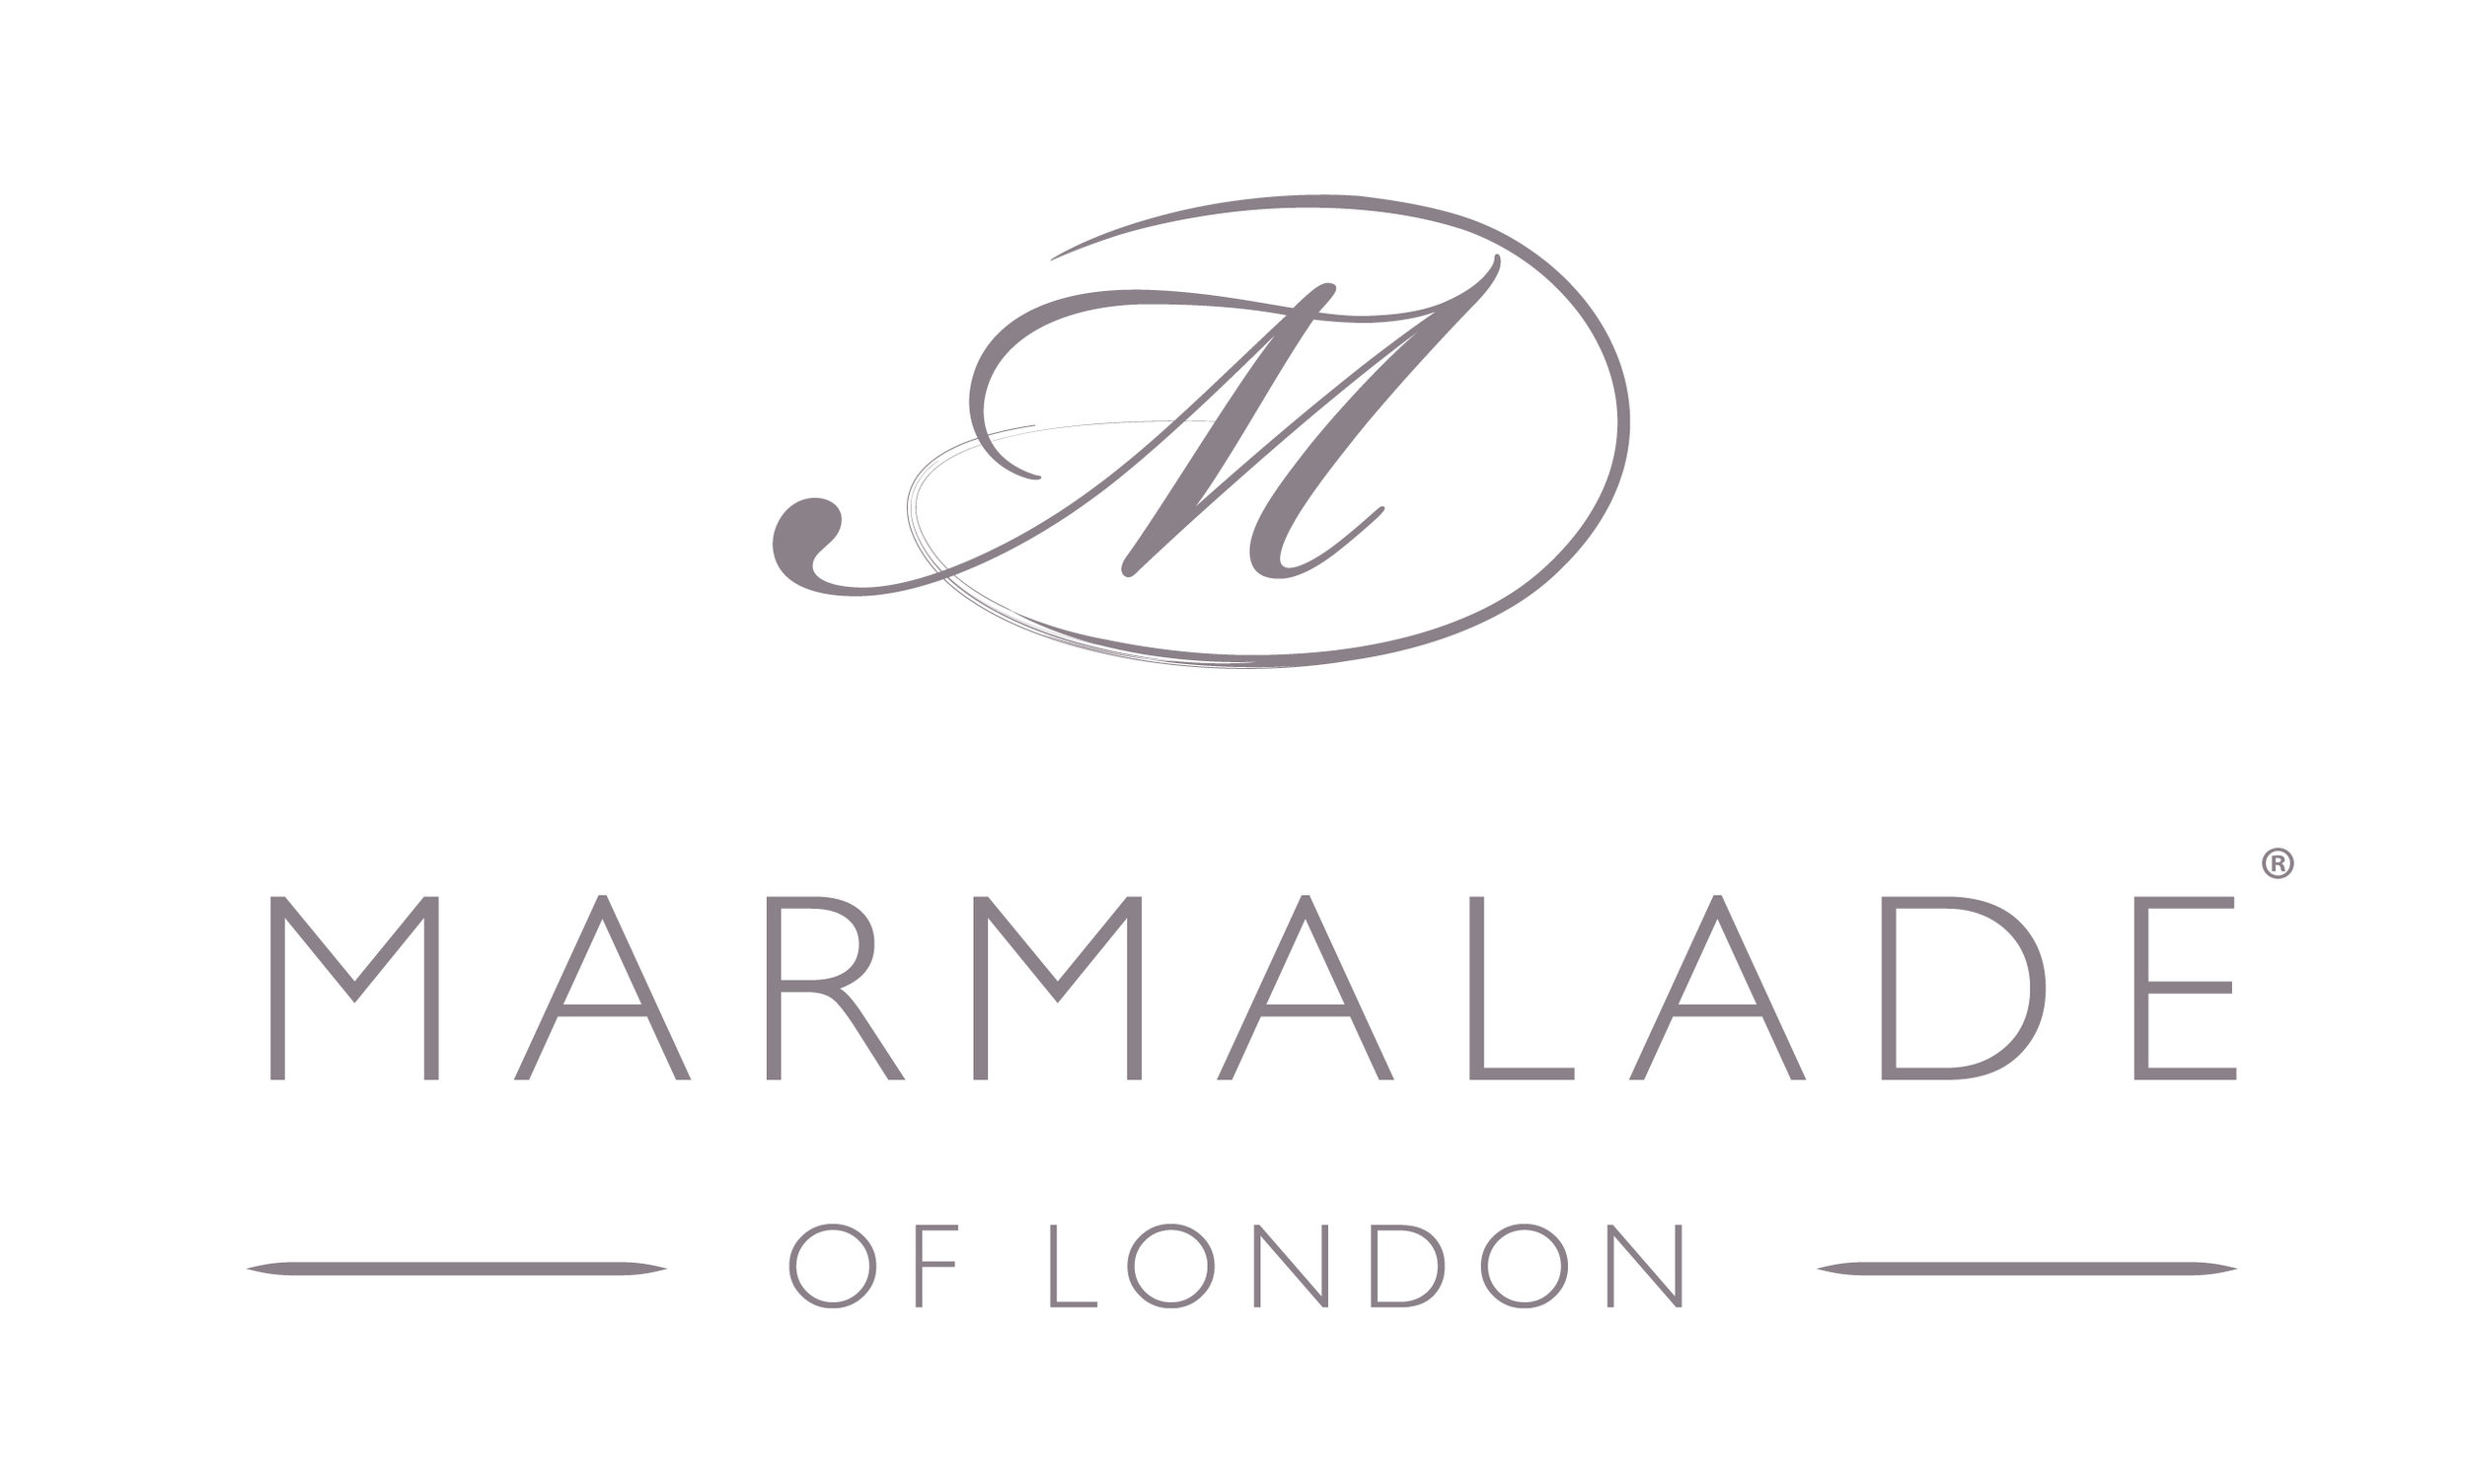 Marmalade - Marmalade of London is a British brand that creates a little indulgent luxury for every home. We have a passion for fragrance and design which is seen in our contemporary packaging. Fragrance is very personal and different scents can remind us of a person, a place or a moment in time, we have created our fragrances to suit different tastes.All our products are lovingly made in Britain. Our candles are 100% soy wax with cotton wicks and essential oils. The nearest we get to animal testing is our family black labrador Plum who accompanies us to work and sniffs the occasional candle or reed diffuser. She seems to approve. We hope you enjoy them as much as we enjoyed making them for you.